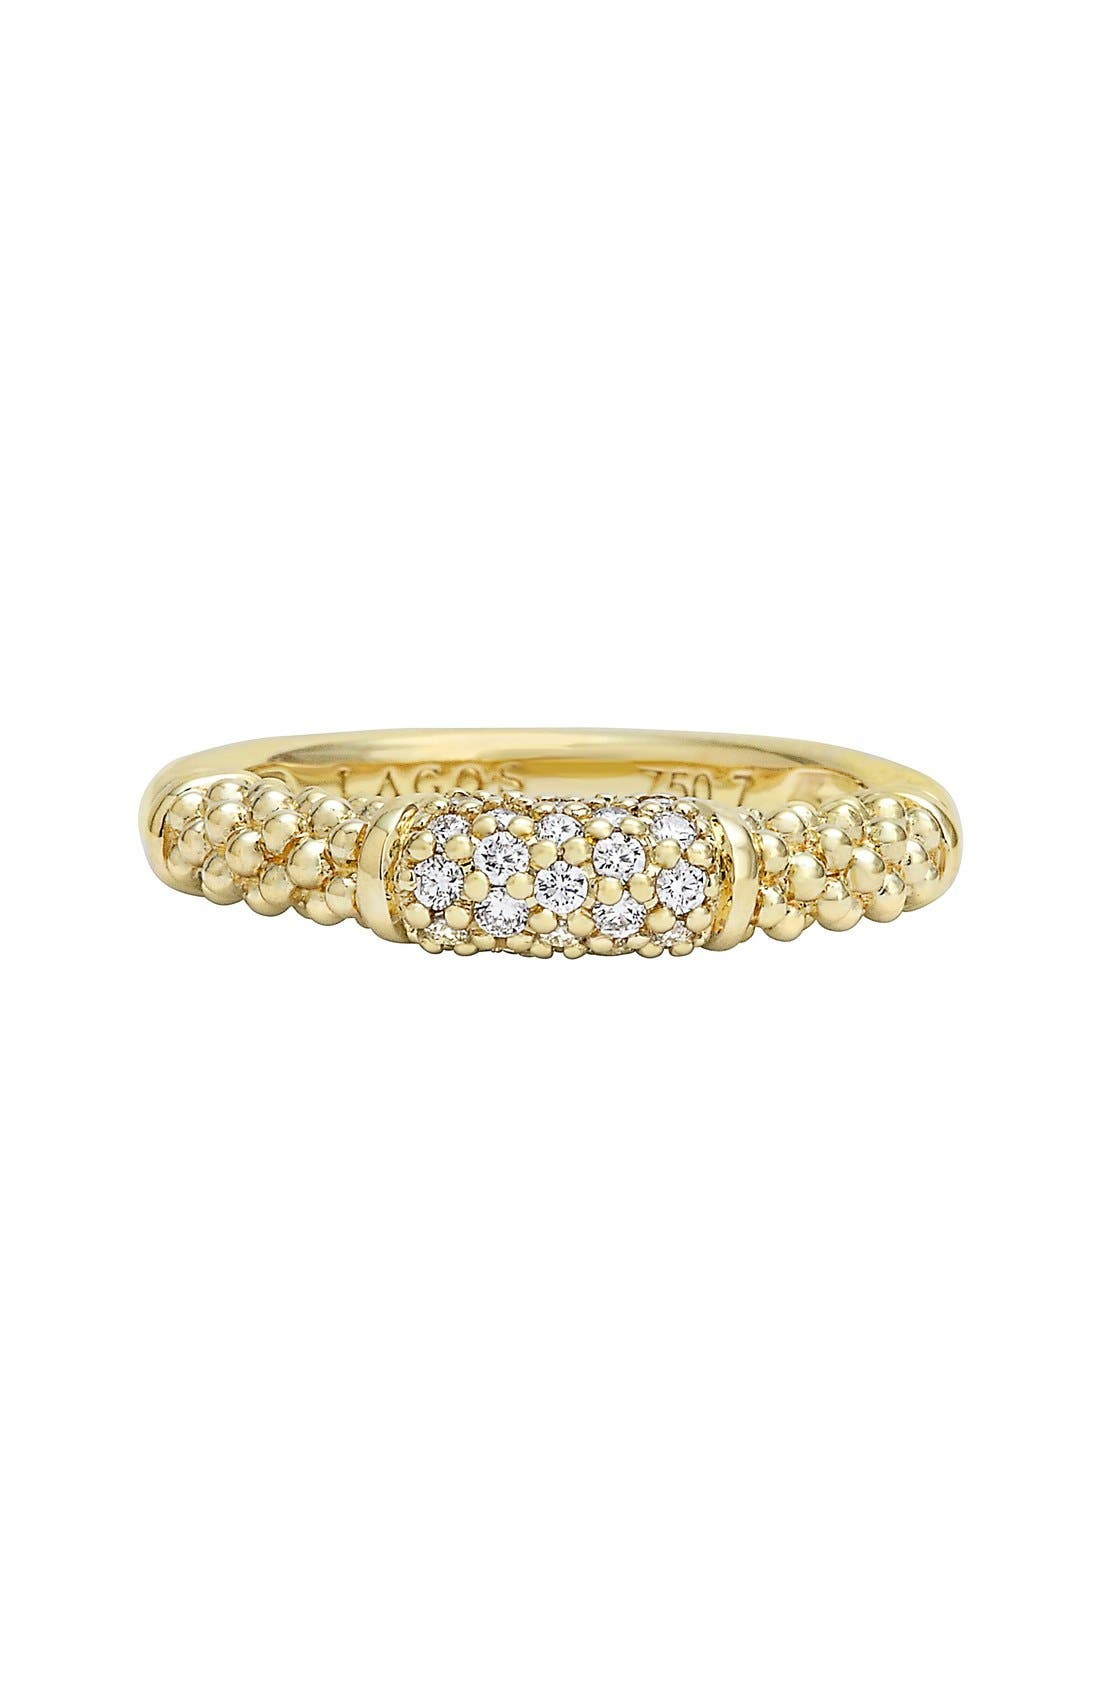 Caviar Diamond Ring,                             Alternate thumbnail 9, color,                             GOLD